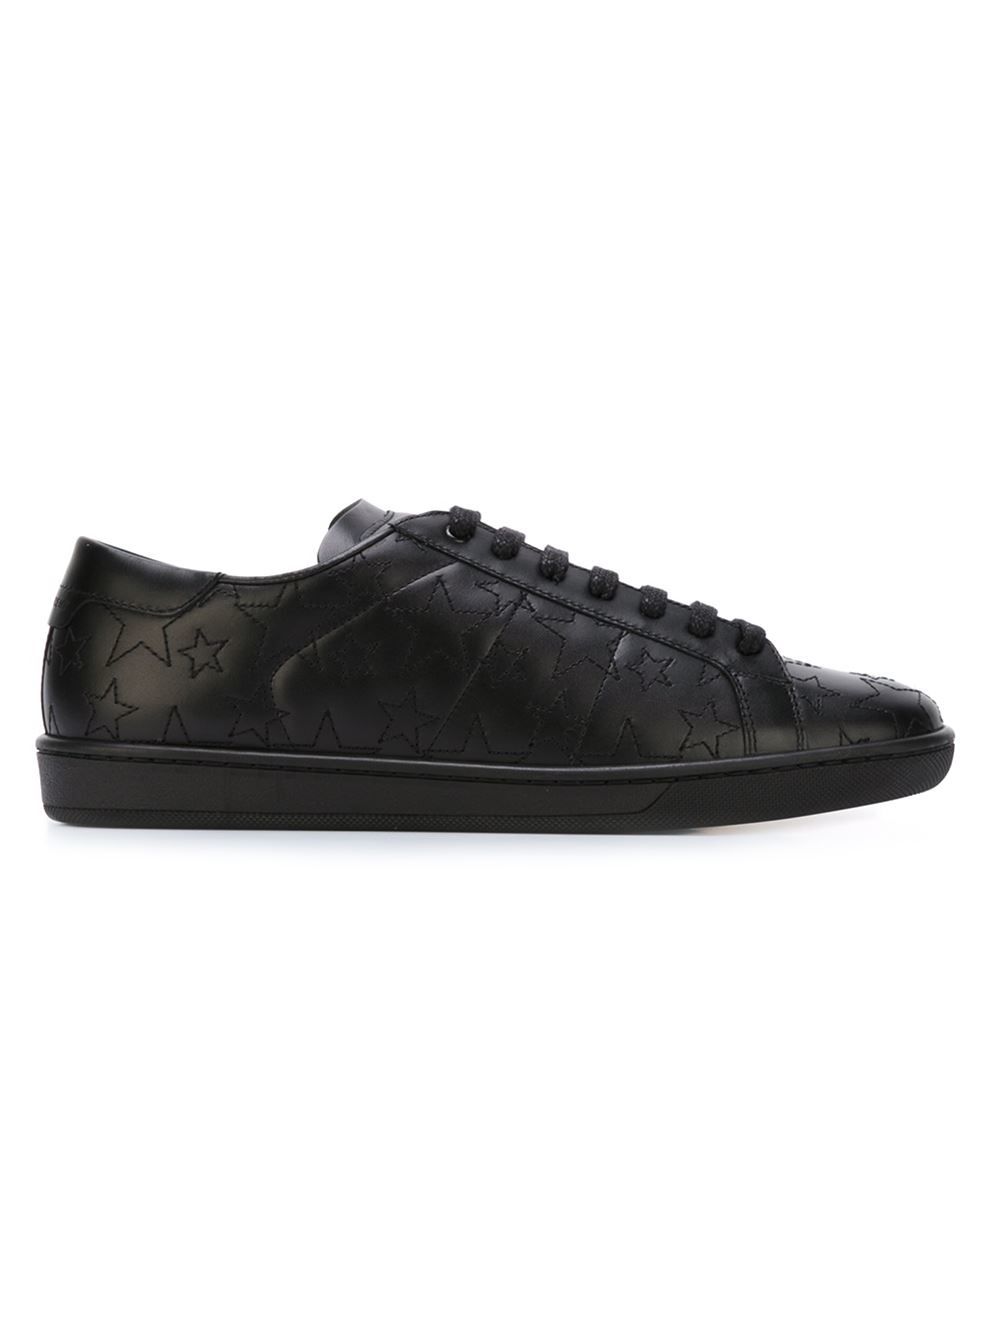 saint laurent court classic leather sneakers in black lyst. Black Bedroom Furniture Sets. Home Design Ideas